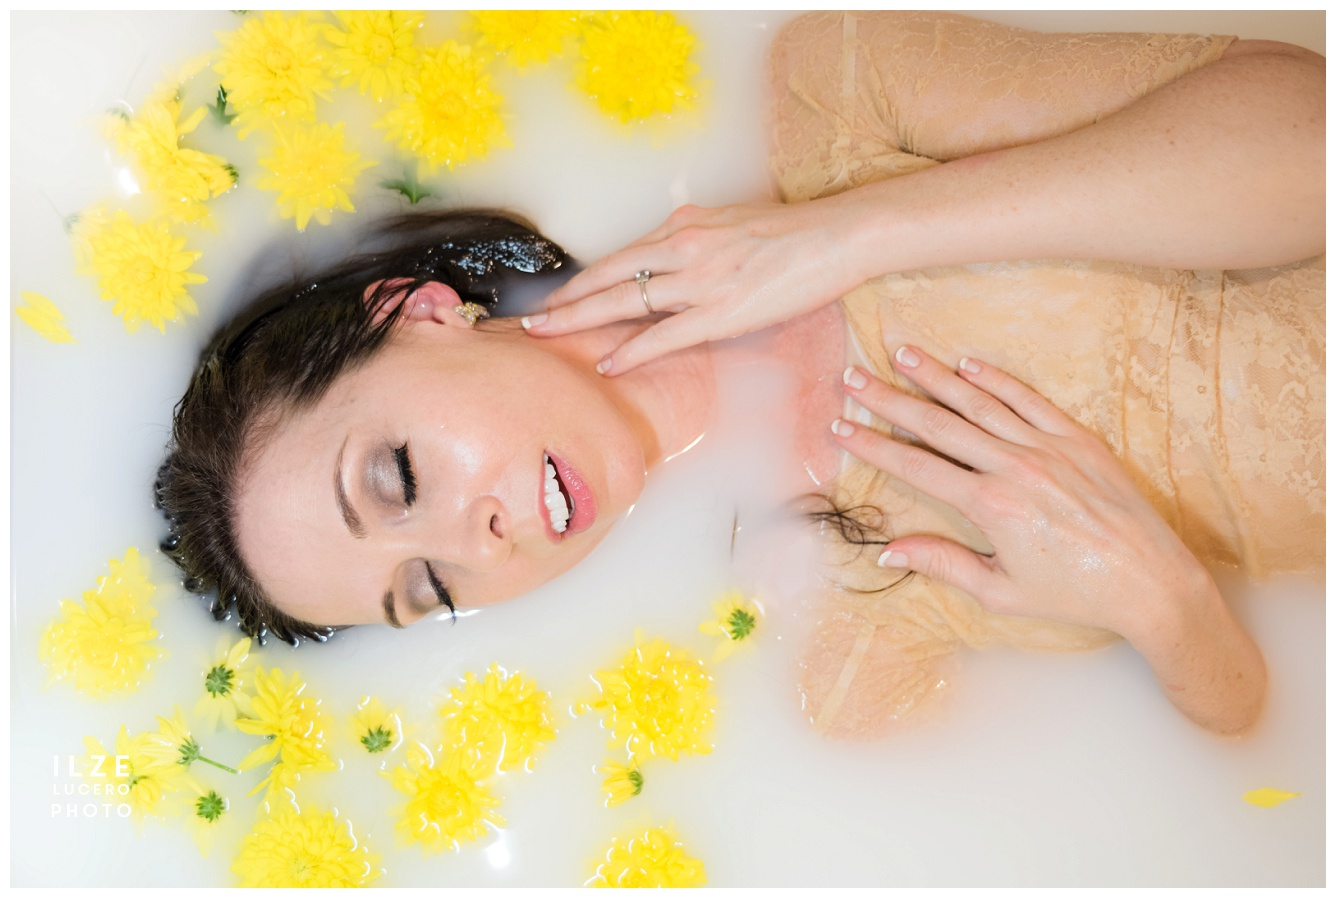 Milk Bath photo inspiration with yellow flowers, fashion photo in milky water